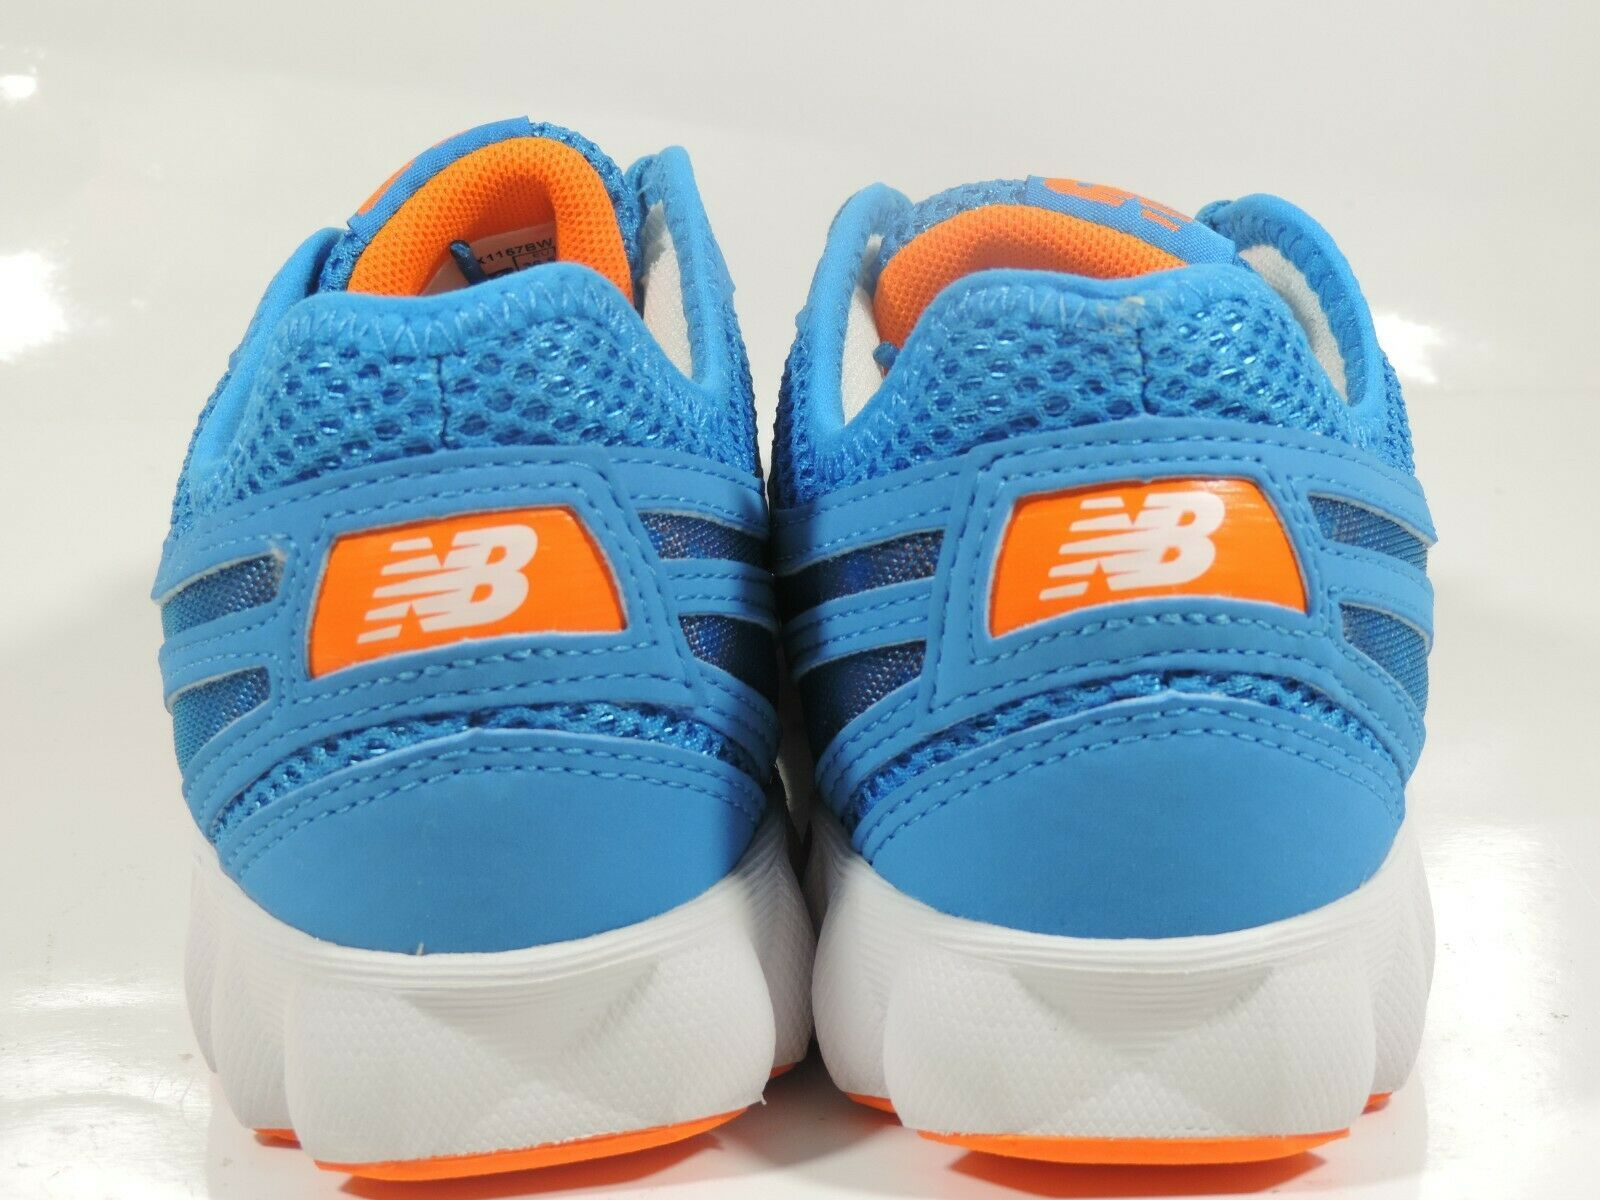 NEW BALANCE WOMENS SHOES WX1157BW SNEAKERS RUNNING BLUE WHITE SZ 6 B image 5